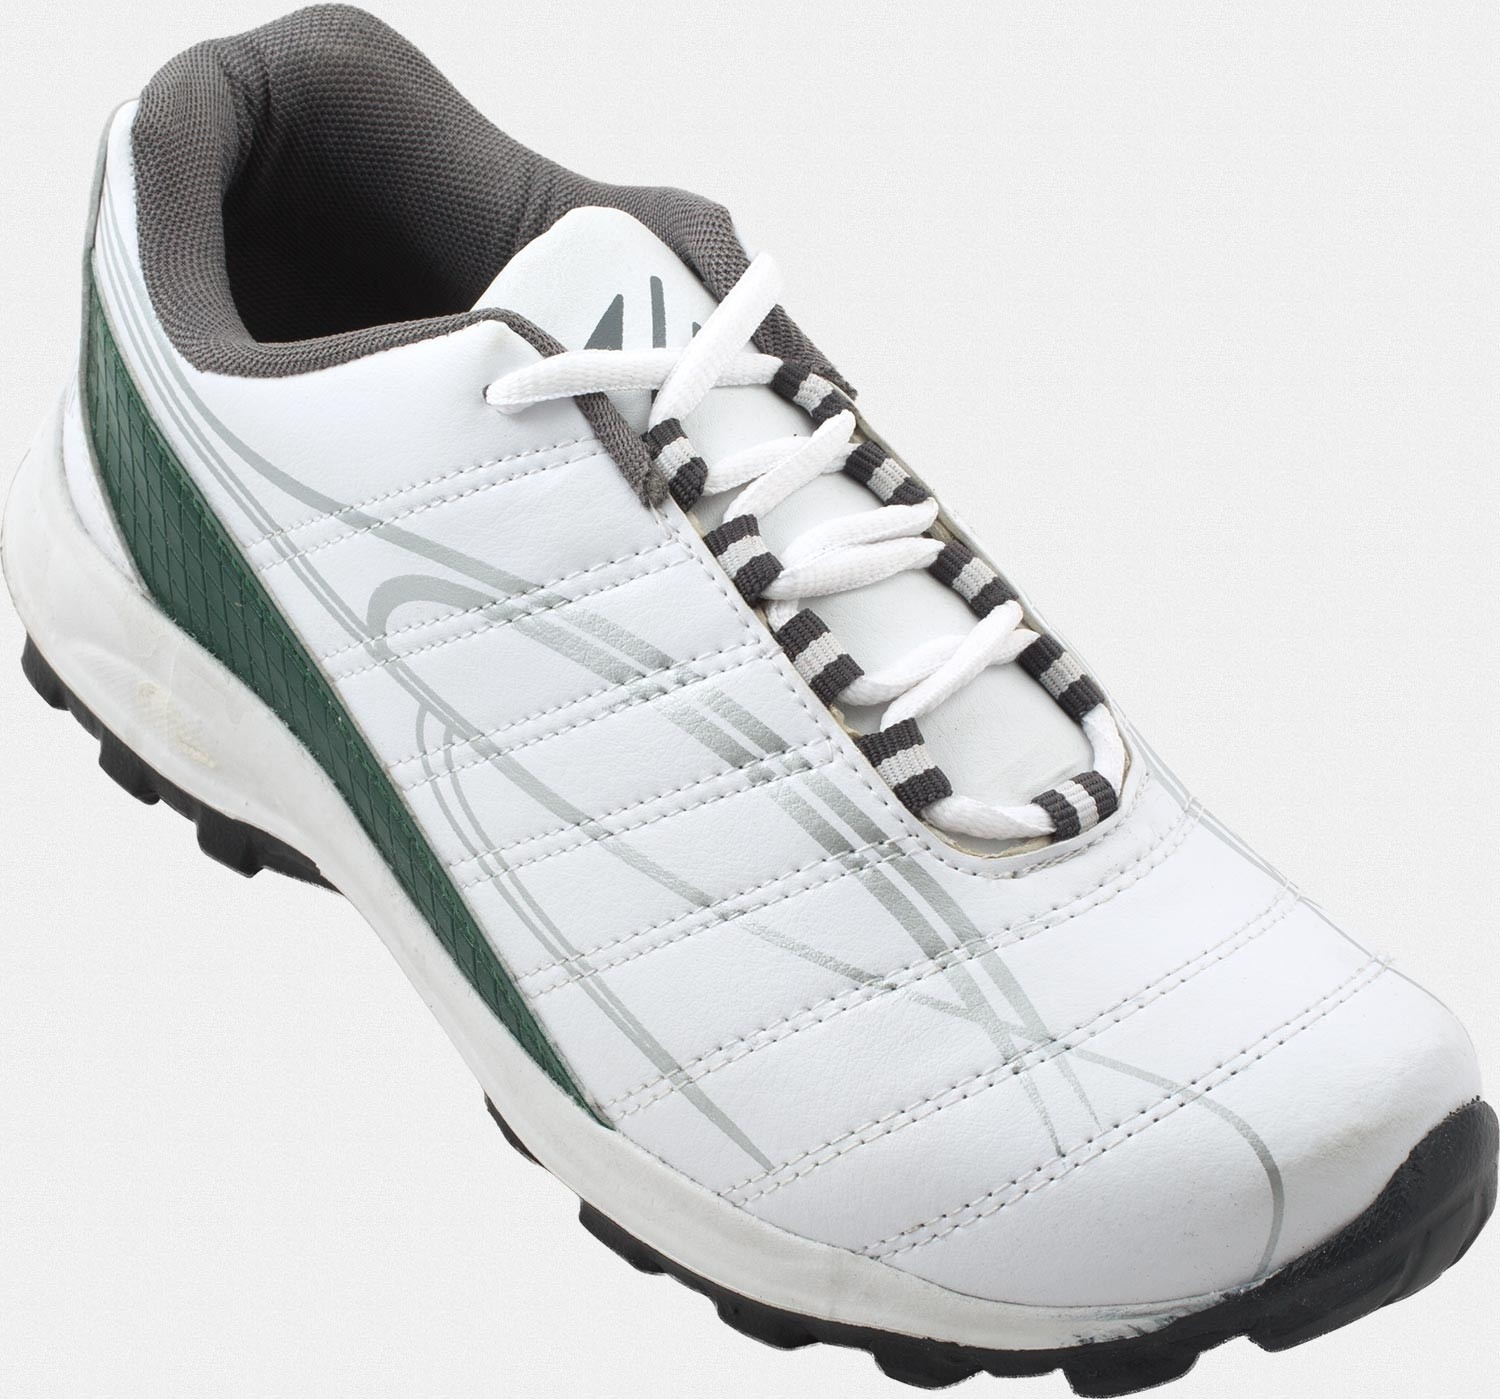 Zovi Sporty White with Silver Highlights Running Shoes(White)